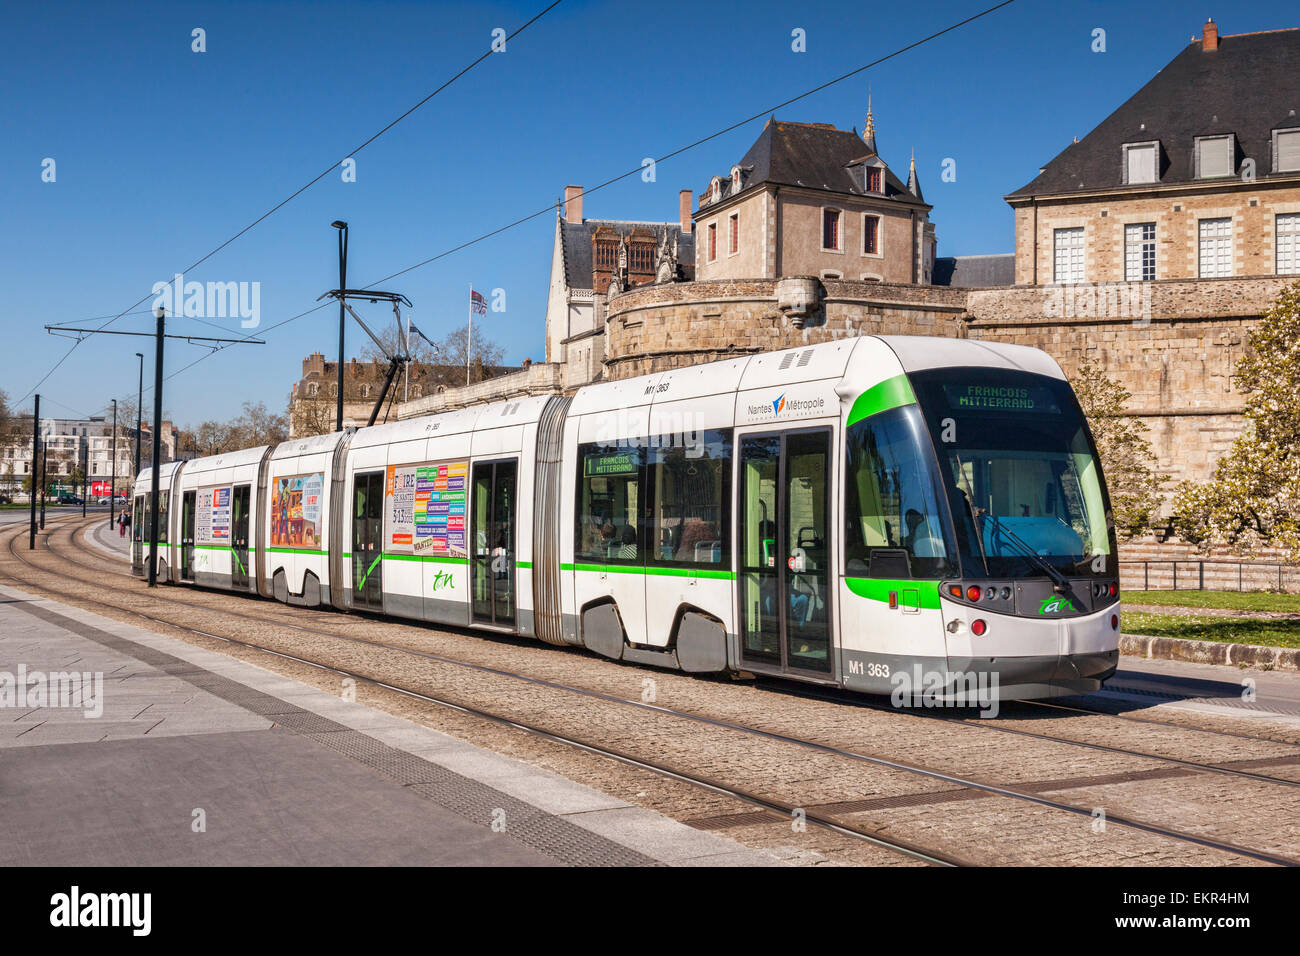 Tram passing the Chateau of the Dukes of Brittany, Nantes, Loire Atlantique, France. - Stock Image